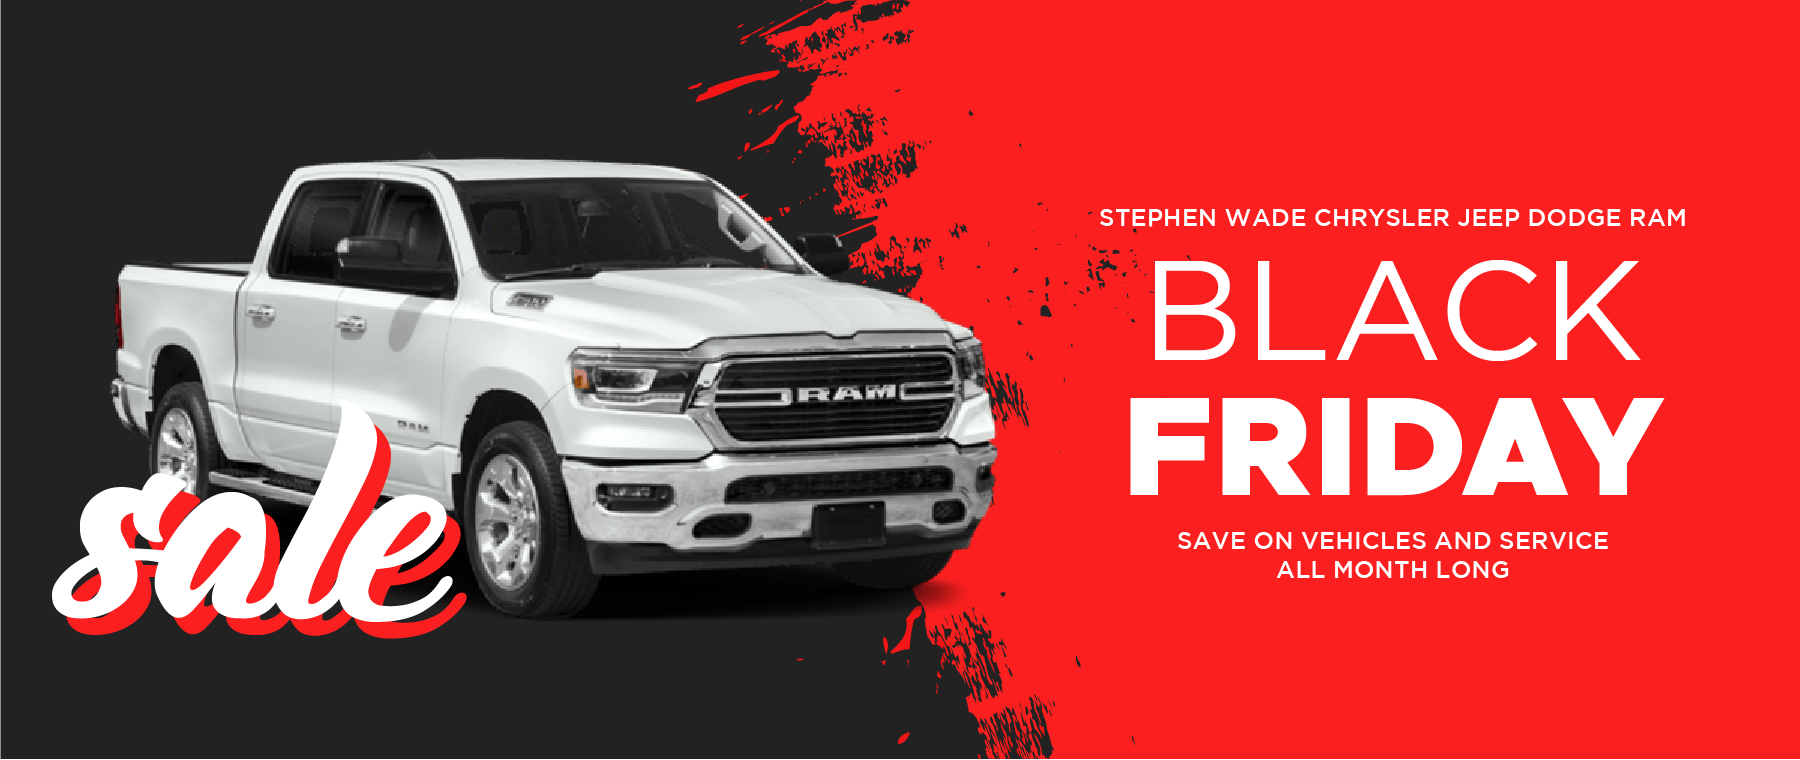 Black Friday Every Friday Sales Event